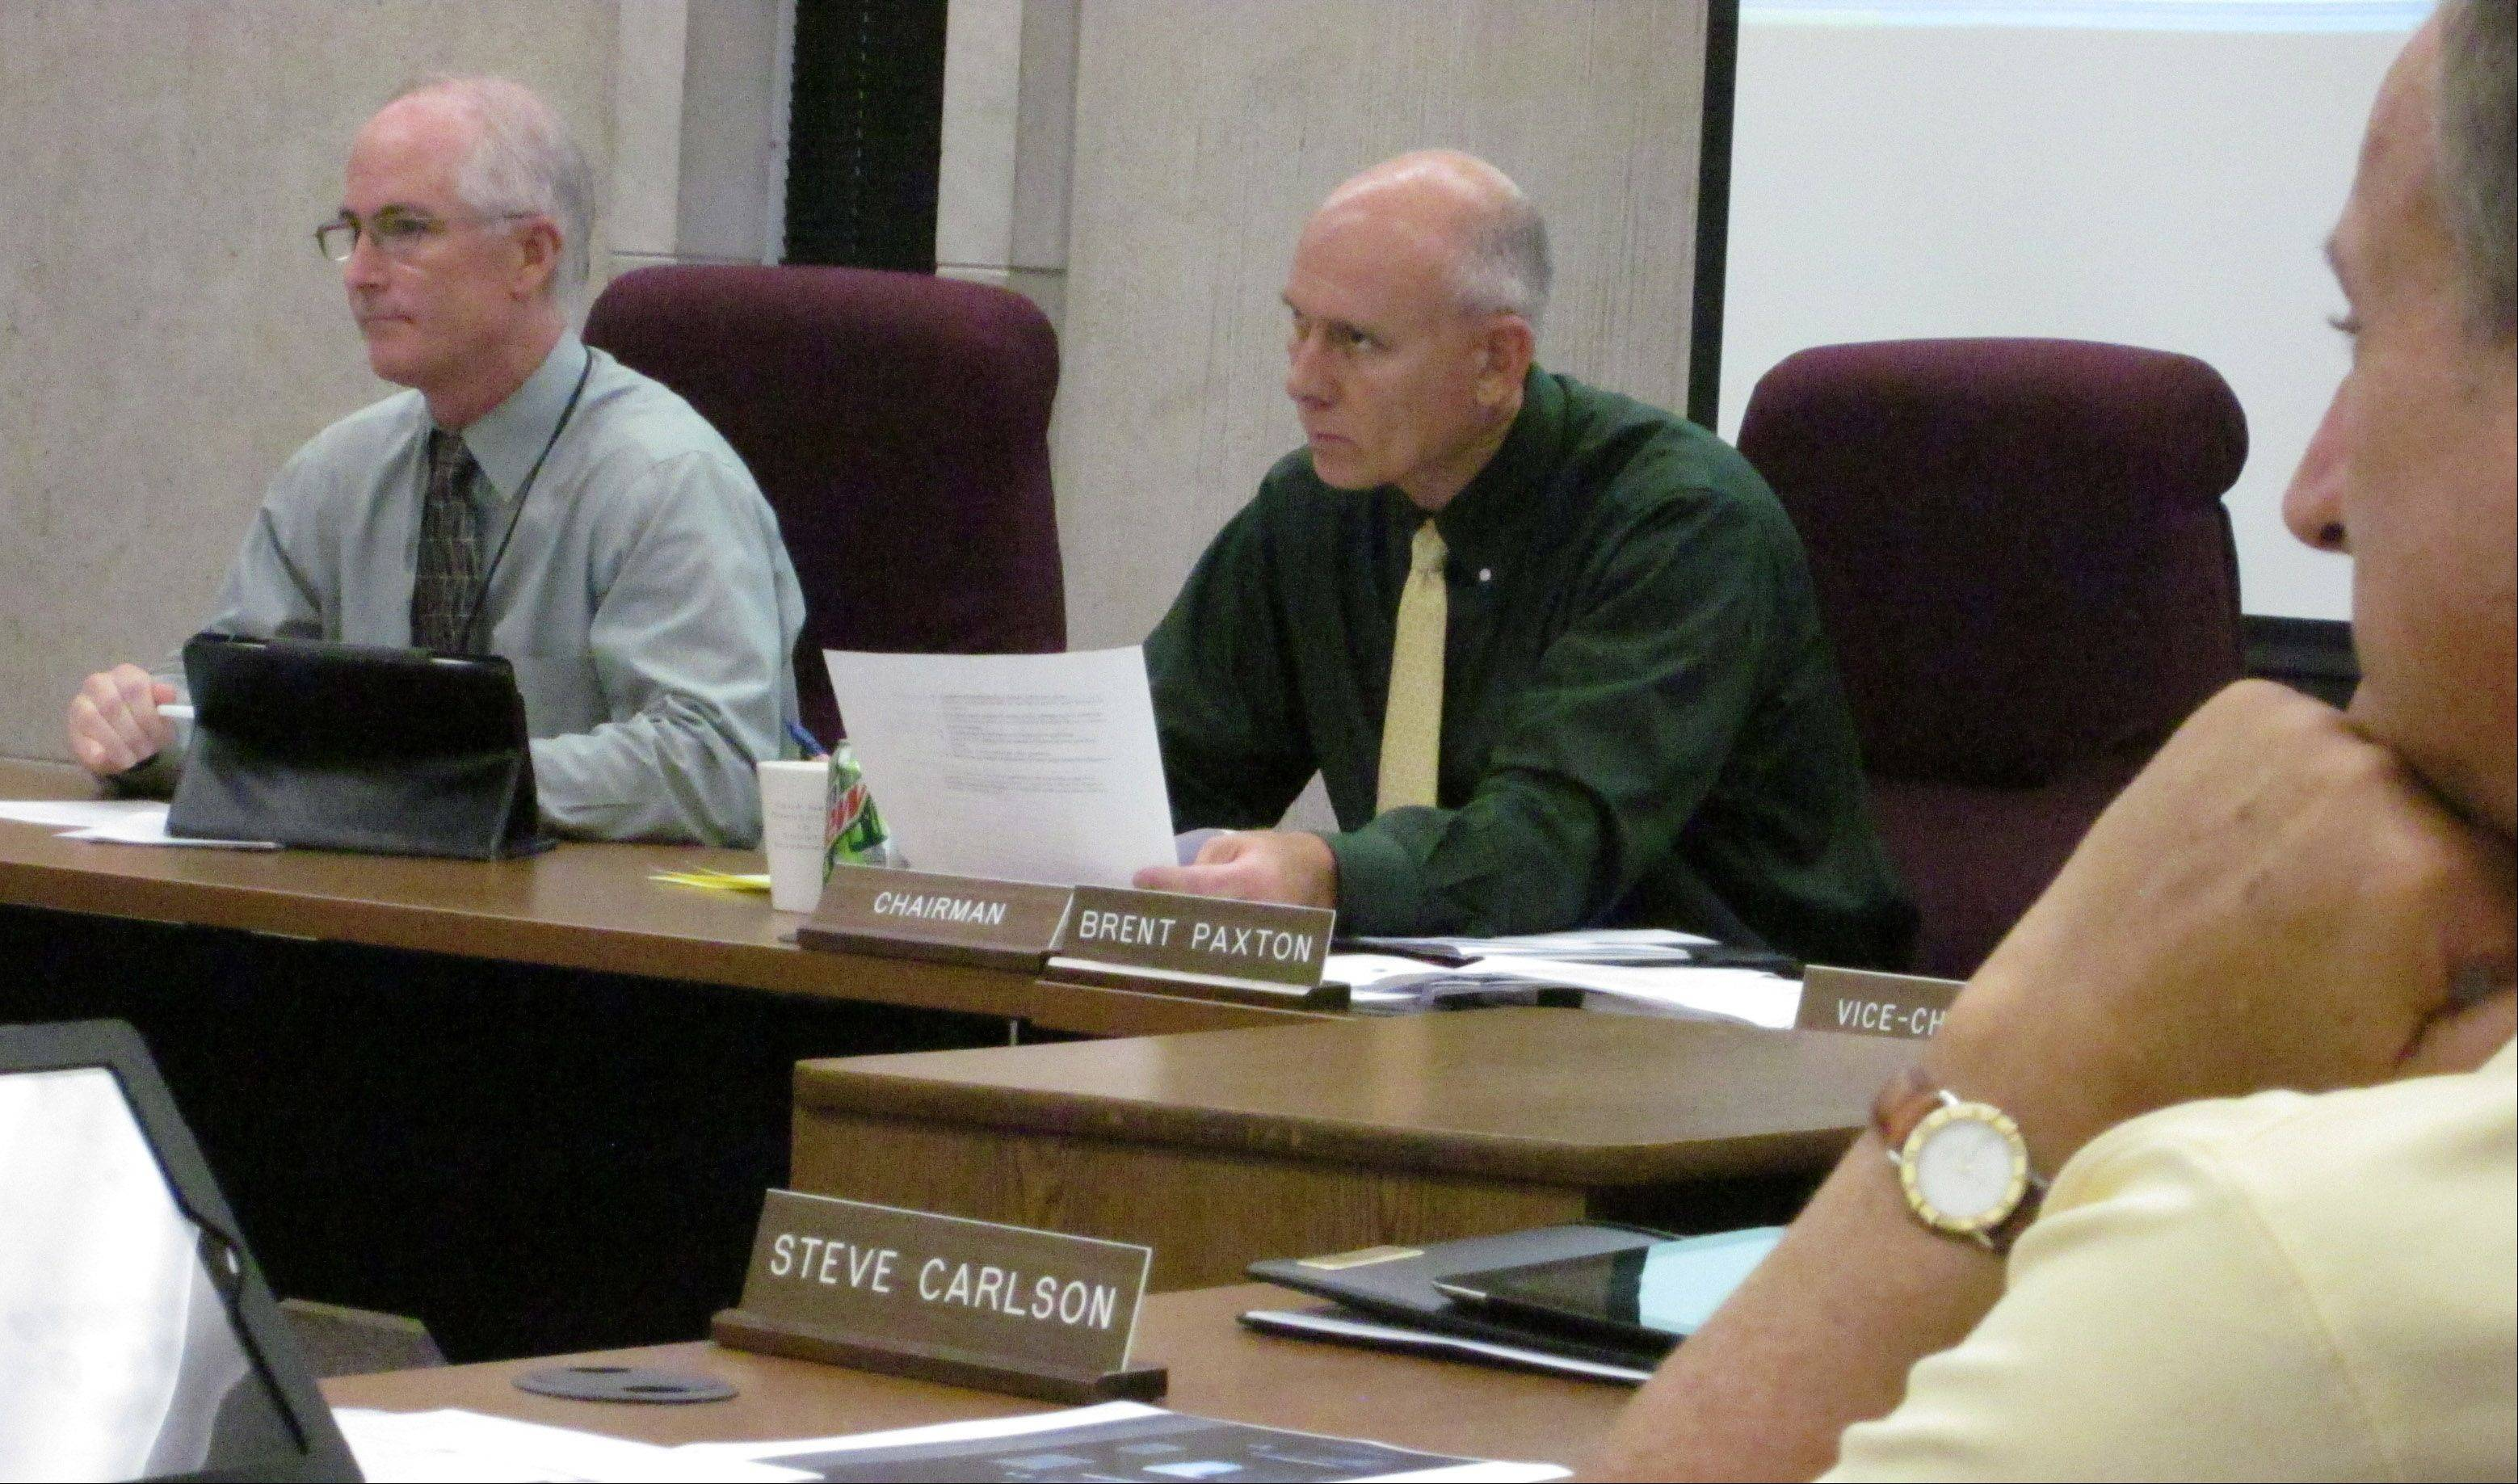 County Administrator Barry Burton, left, and Brent Paxton, chairman of the Lake County Board�s financial and administrative committee, listen to discussion Wednesday.